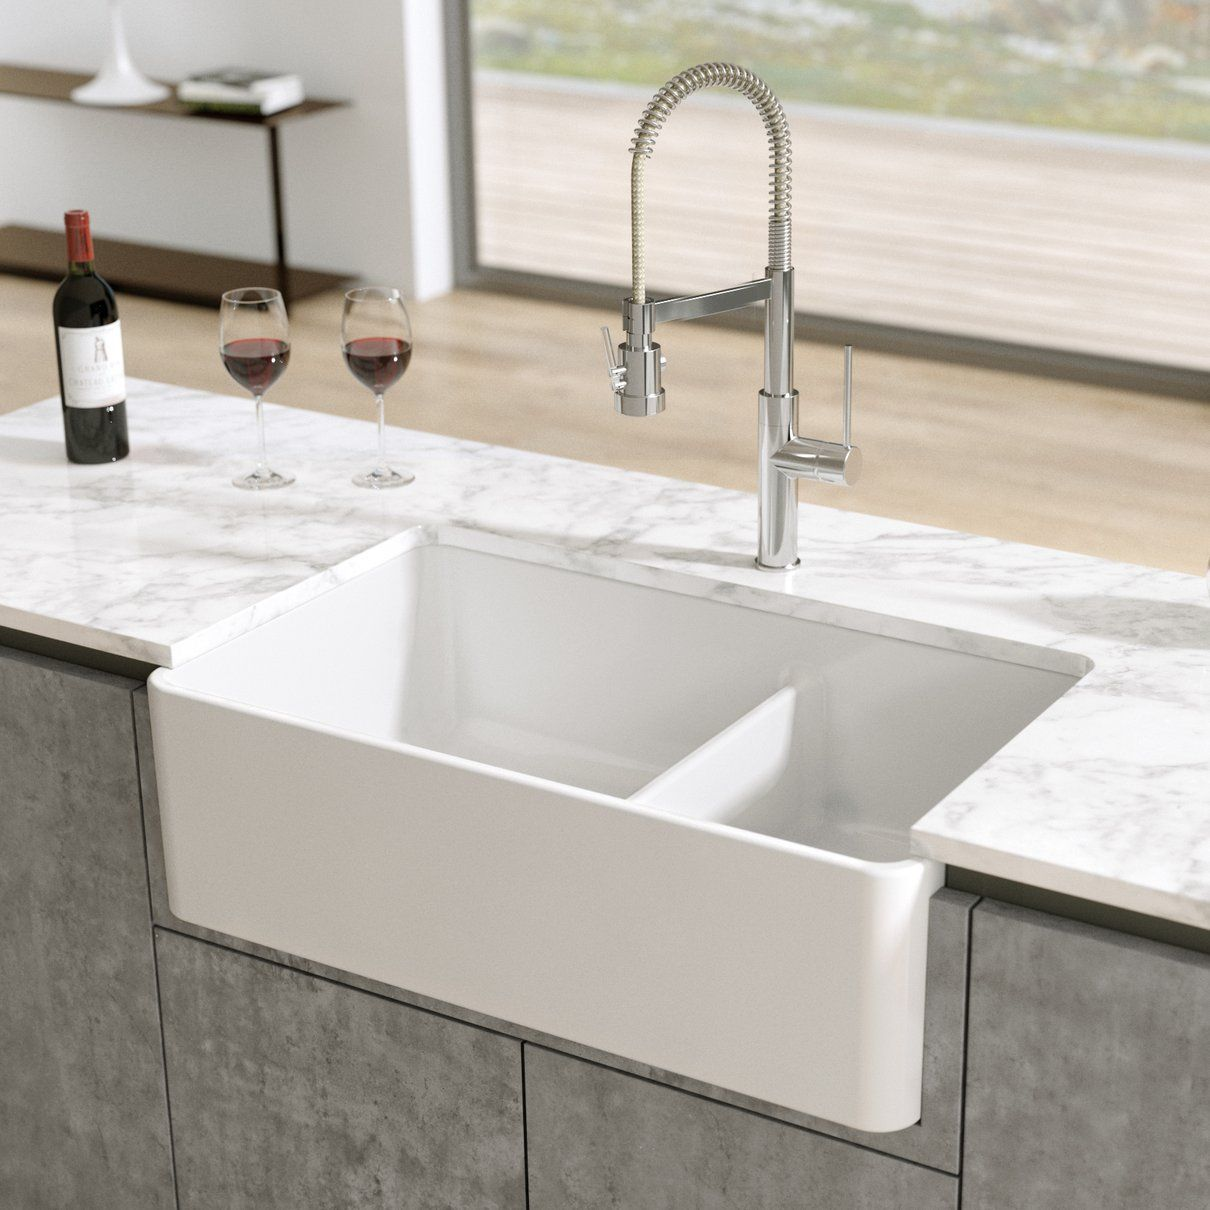 Latoscana 33 Fireclay Double Bowl Reversible Farmhouse Apron Sink White Ltd3319w Farmhouse Apron Sink Fireclay Farmhouse Sink Apron Sink